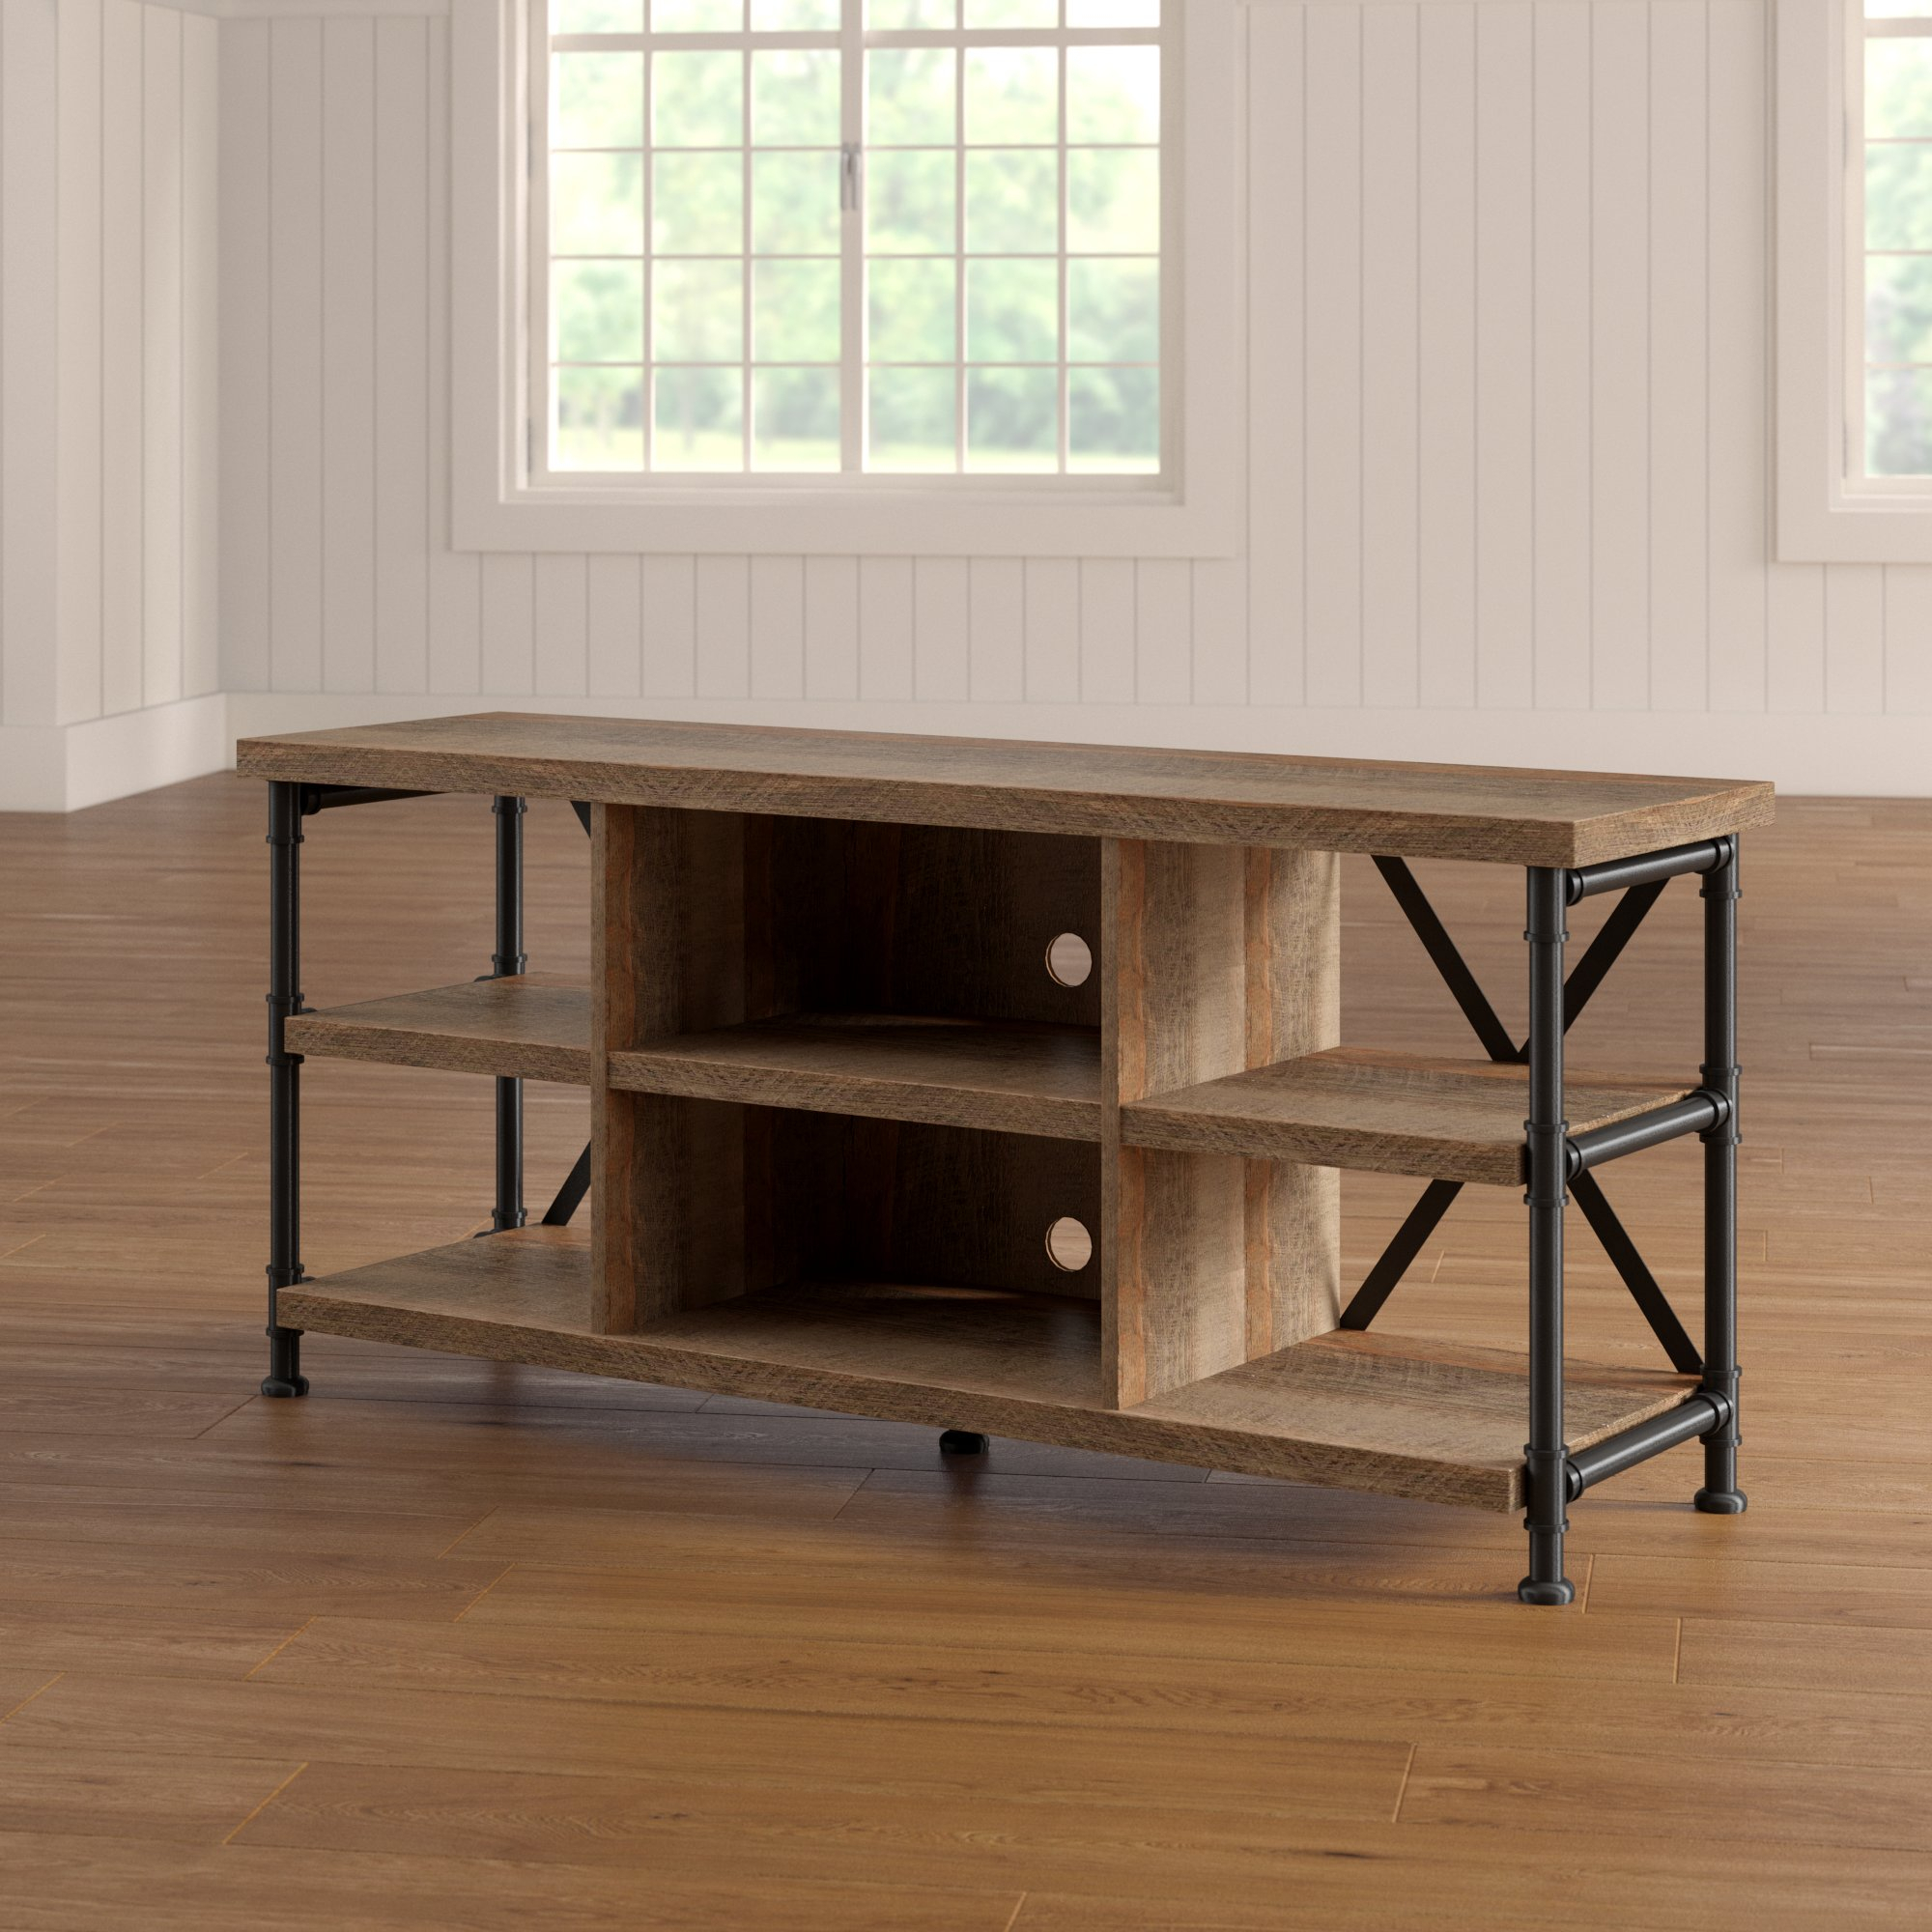 Industrial Tv Stands You'll Love | Wayfair with regard to Walton Grey 72 Inch Tv Stands (Image 16 of 30)